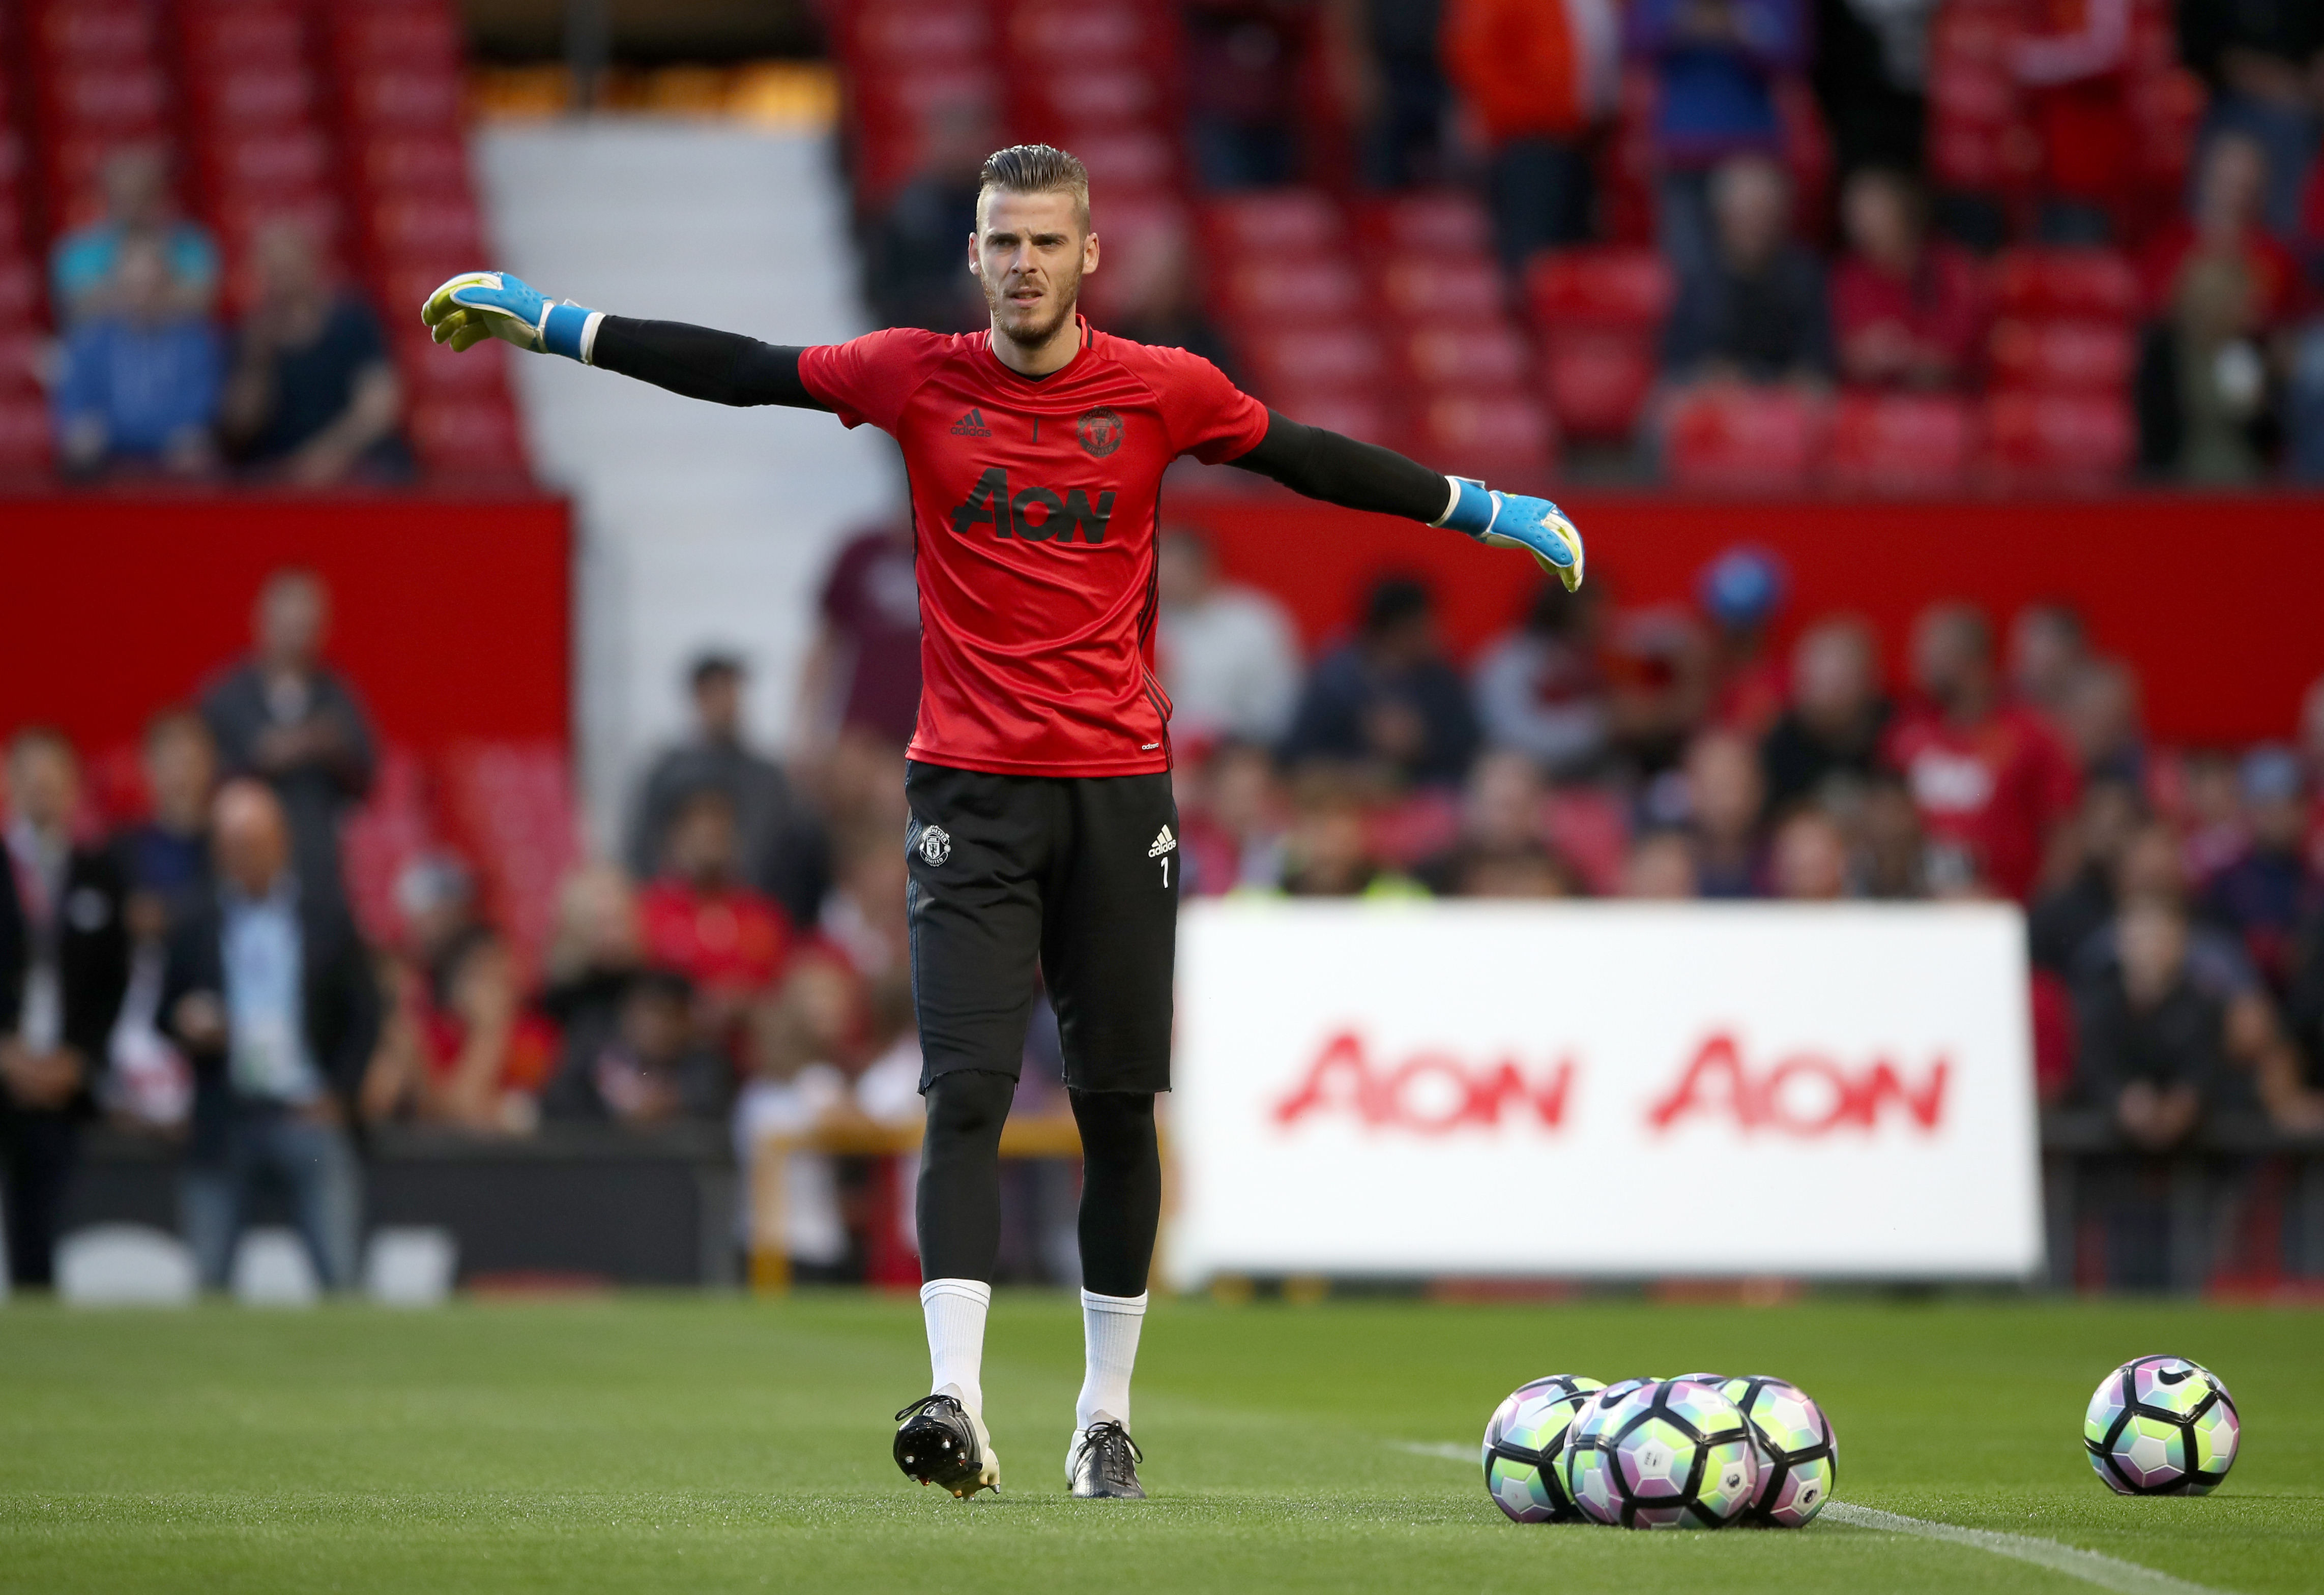 Losing De Gea has been previously unthinkable for United. Image: PA Images